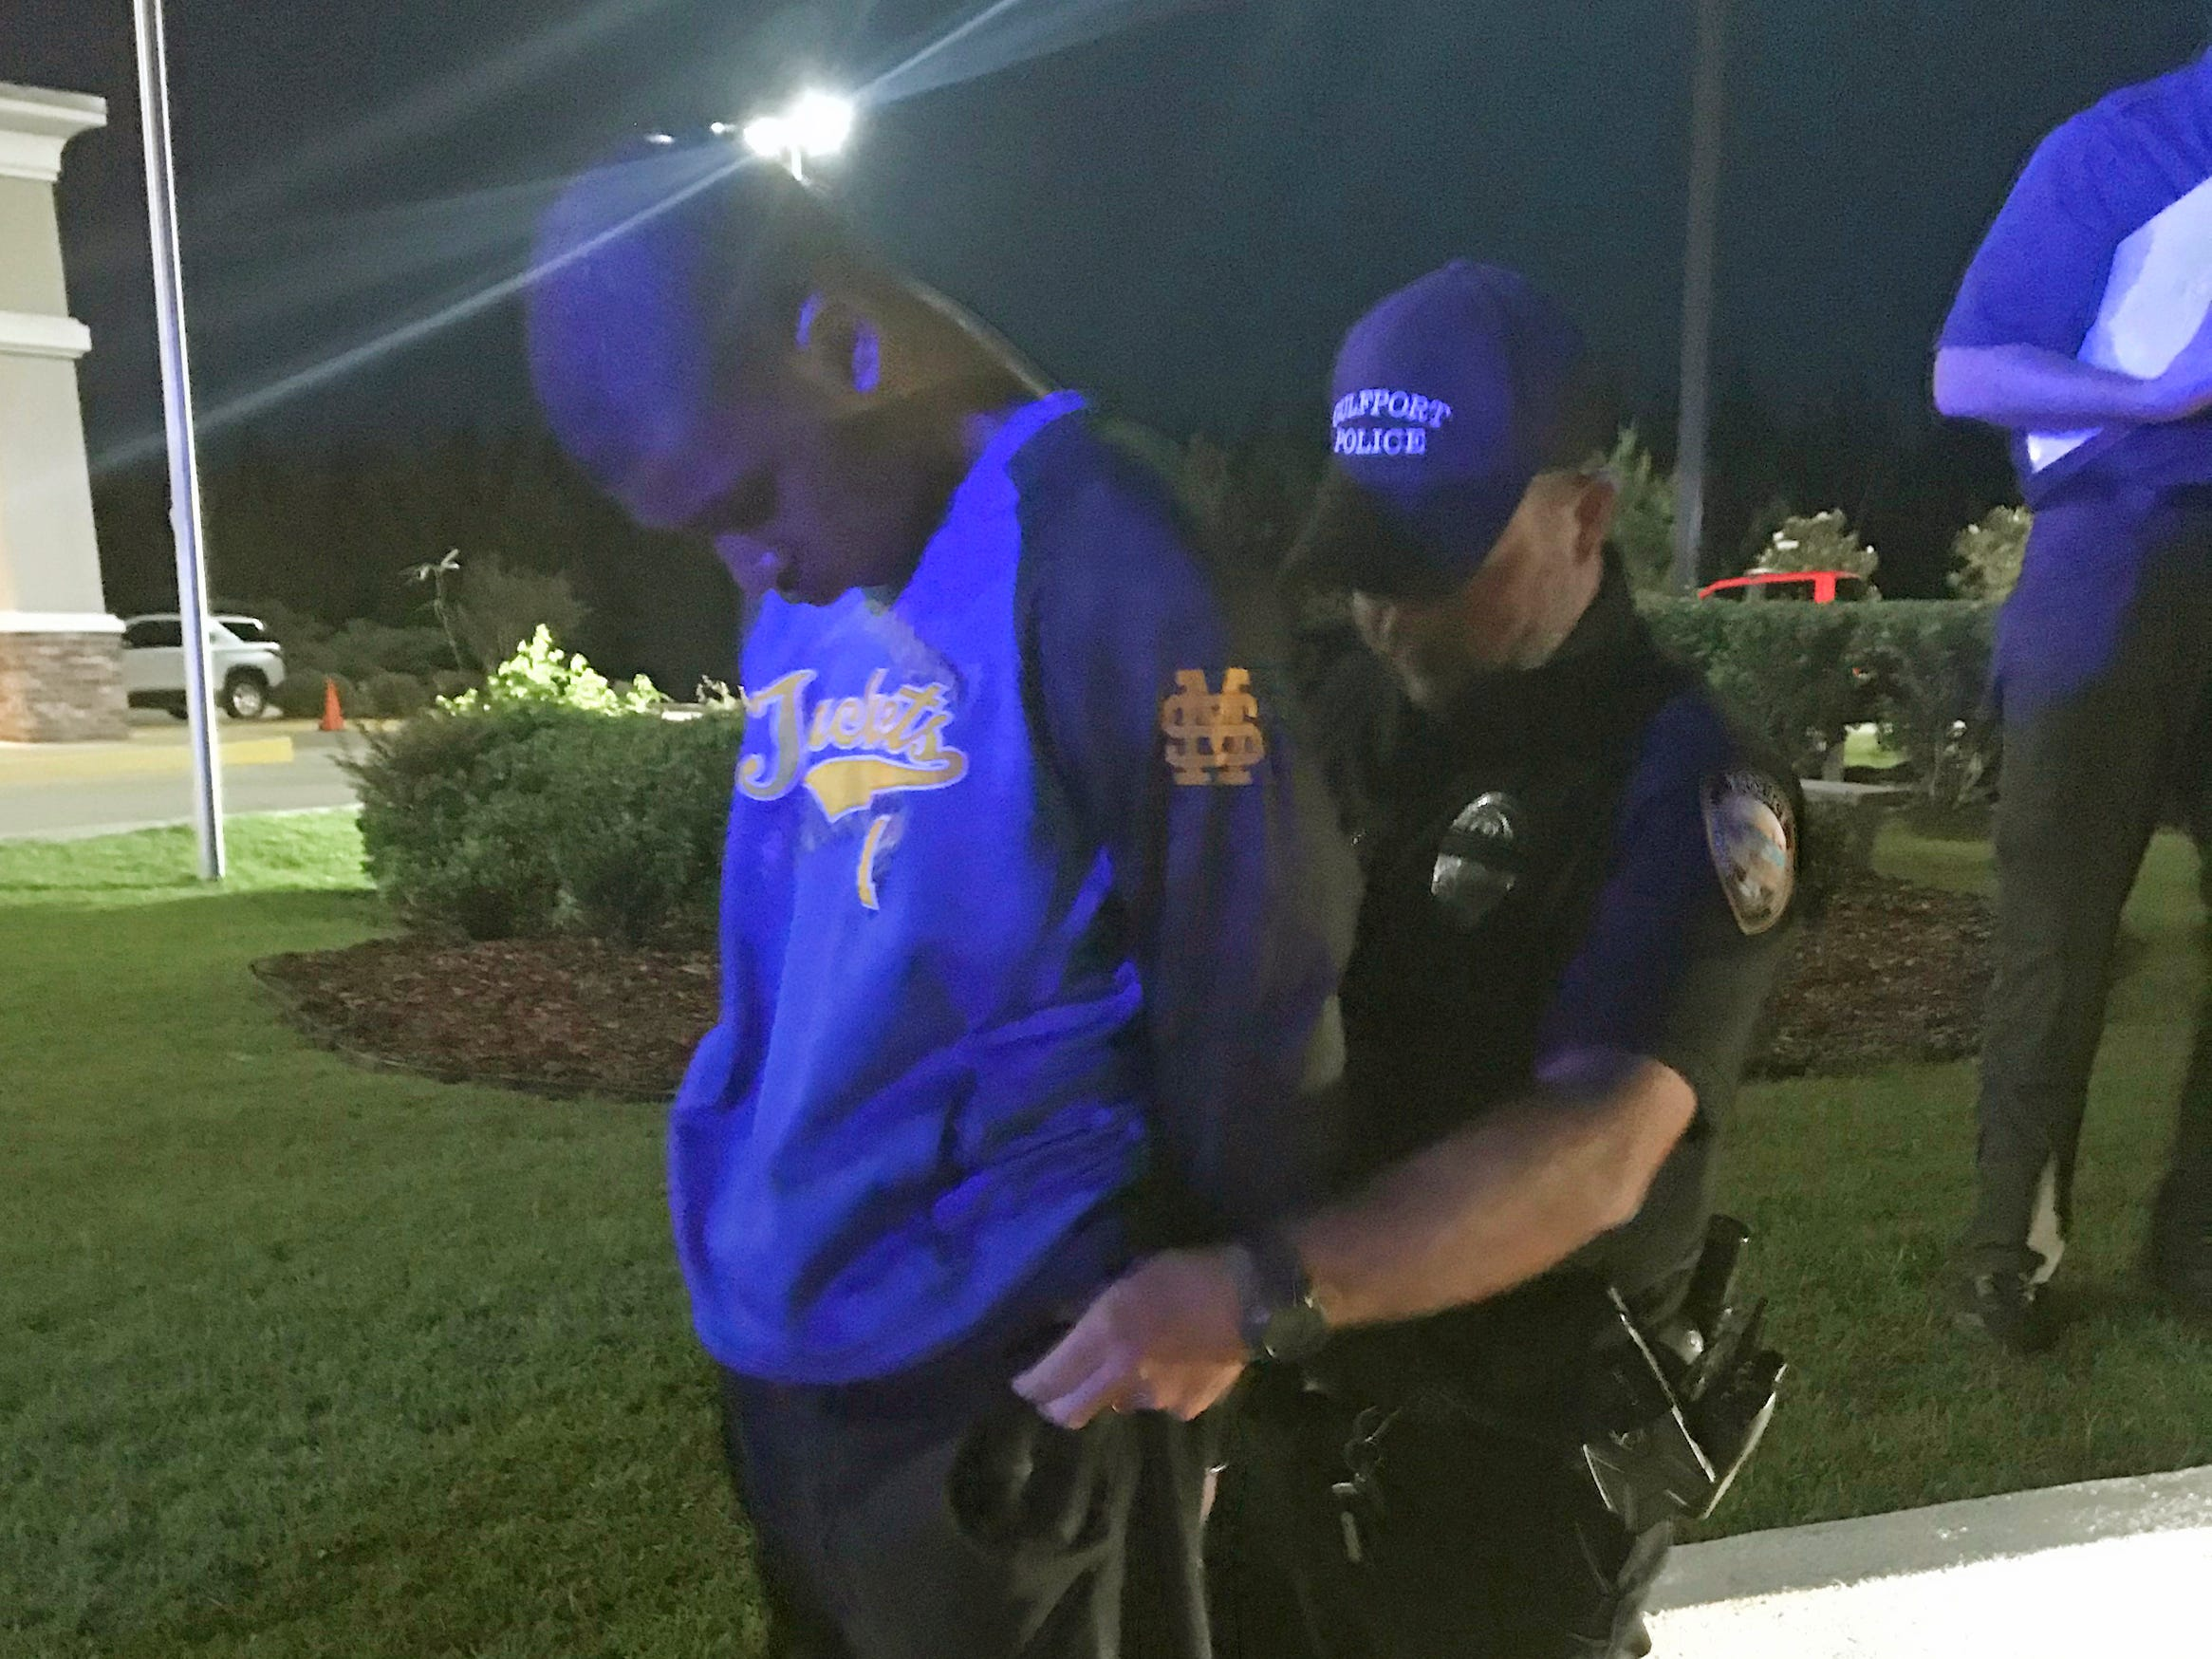 In this Monday, May 6, 2019 photo provided by the Stone County Enterprise newspaper, a Gulfport, Miss., police officer checks the pockets of Darian Tawan Atkinson, wanted for capital murder in the slaying of Biloxi Patrolman Robert McKeithen, as he is apprehended in Wiggins, Miss.